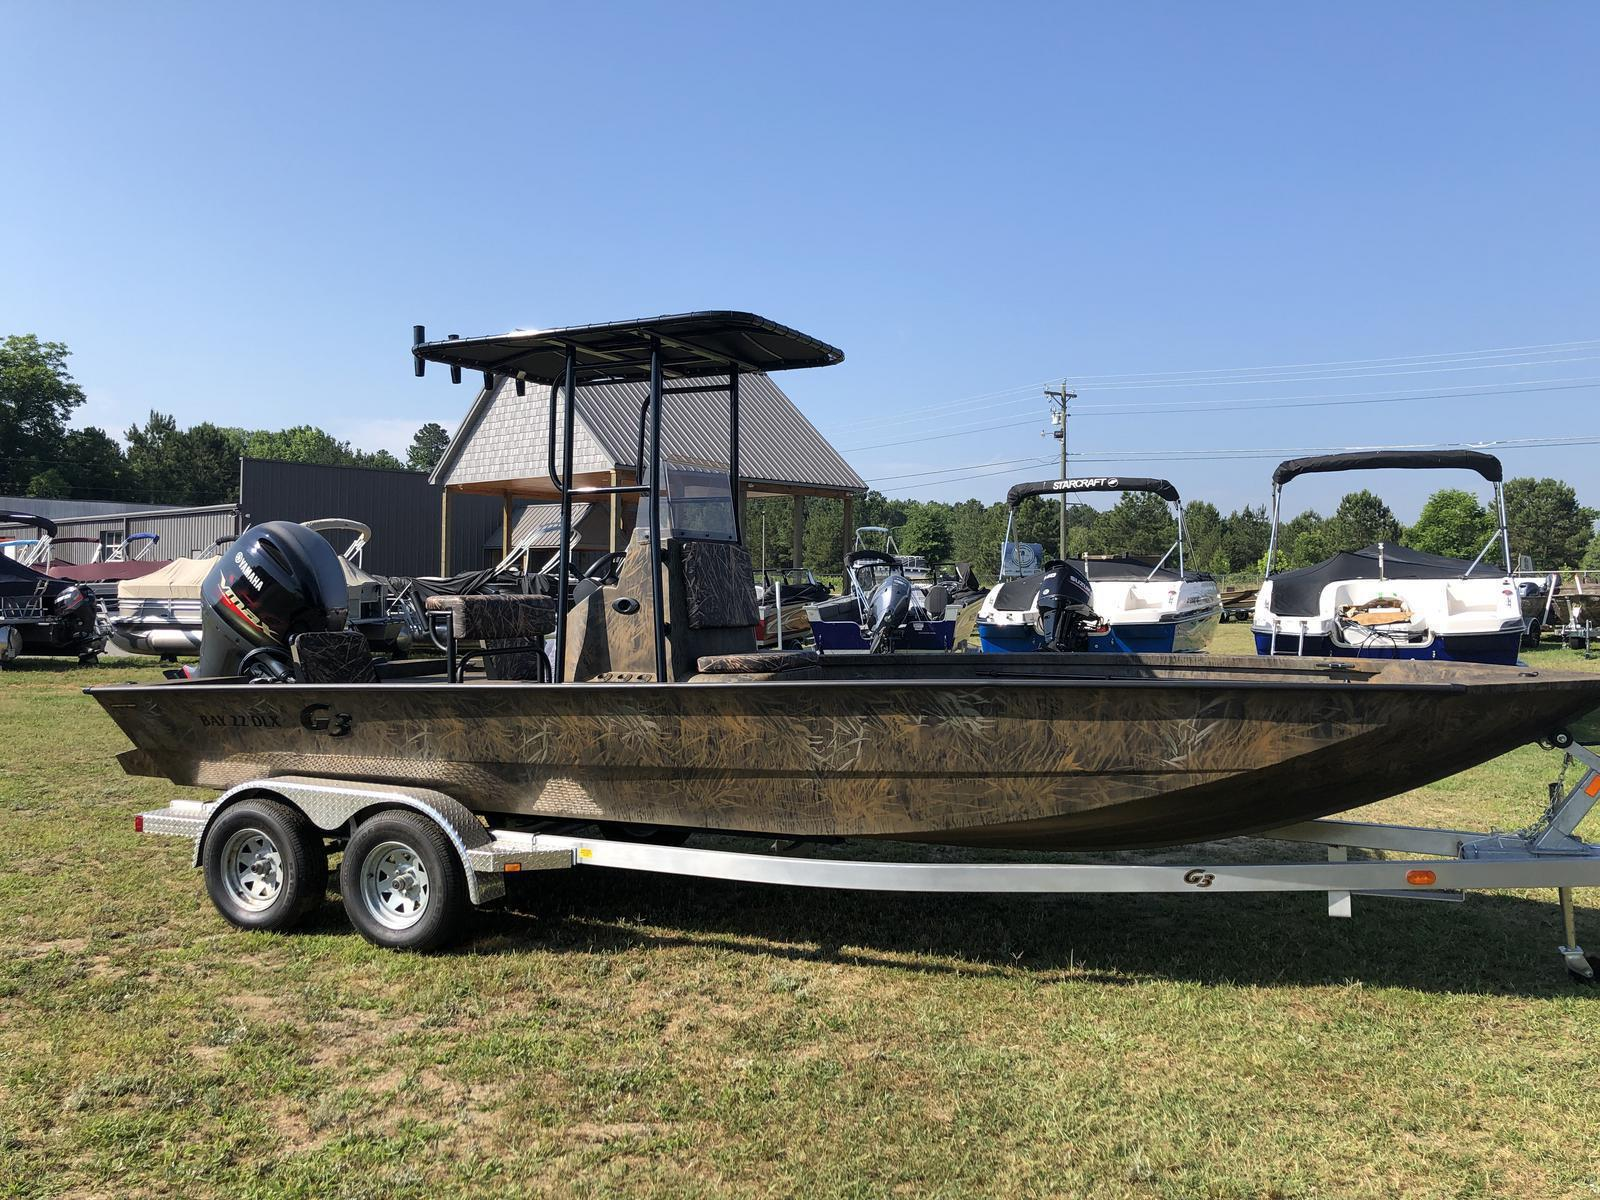 2019 G3 Bay 22 DLX Camo for sale in Newberry, SC  Muddy Bay